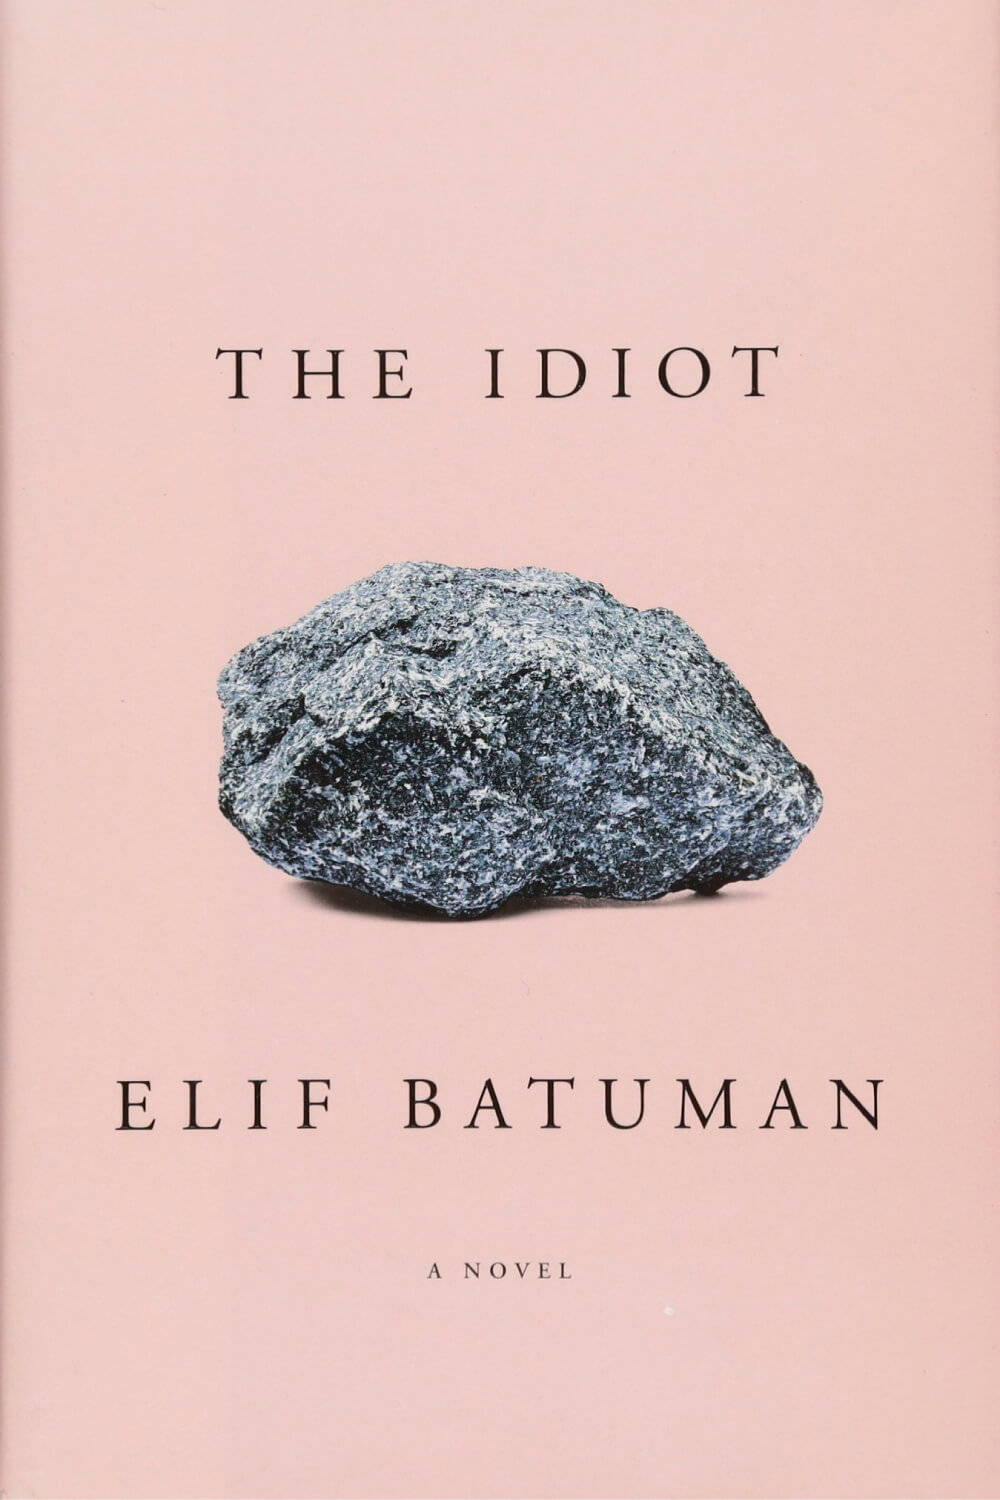 Summer Reading List 2018 The Idiot book